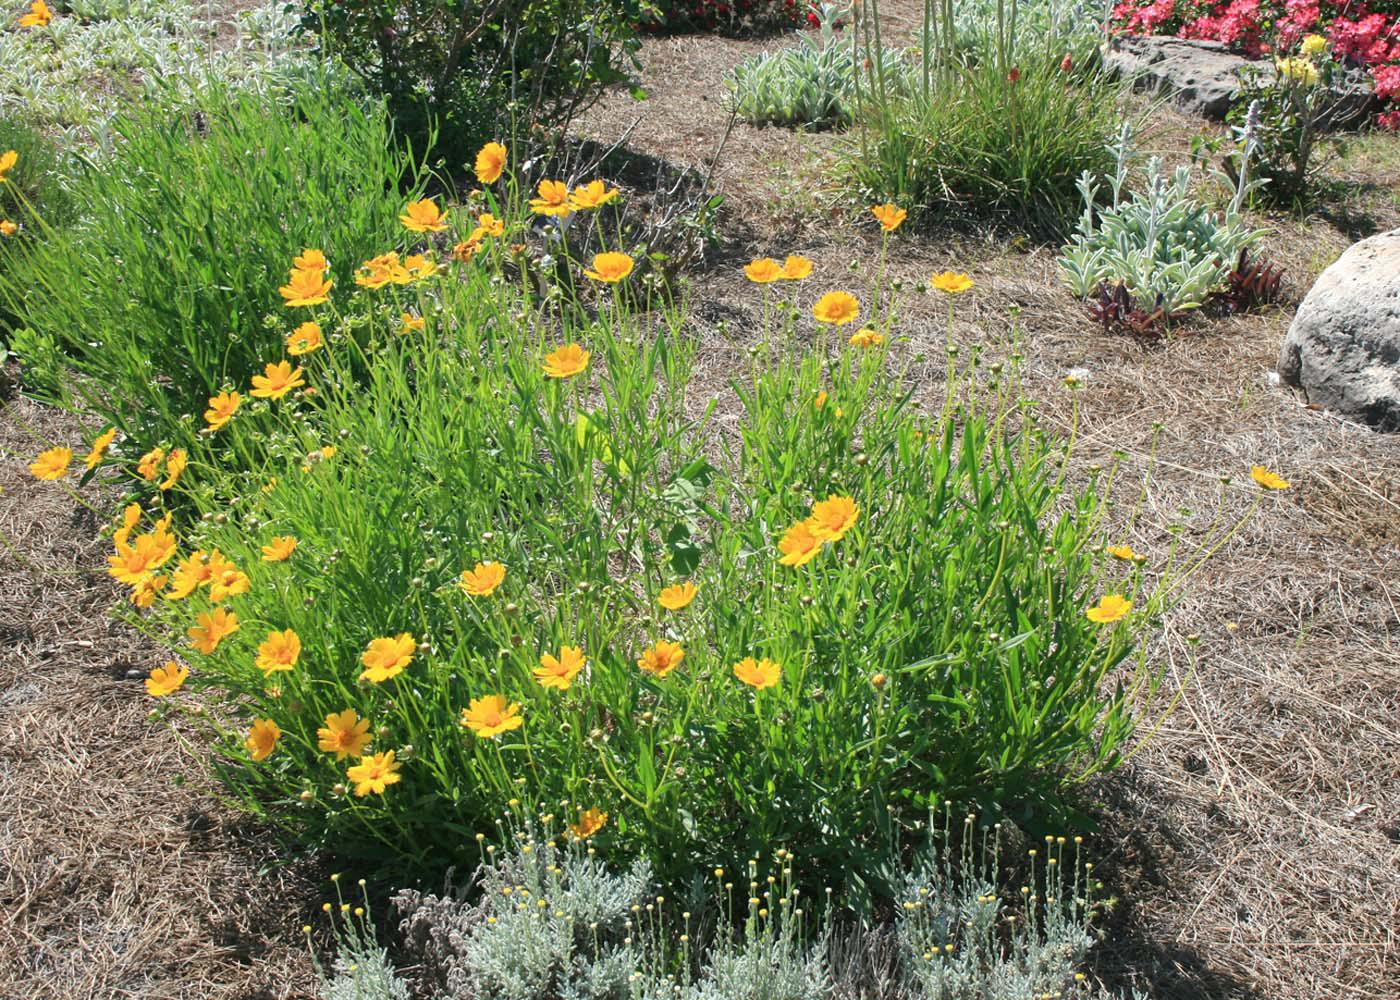 Coreopsis grandiflora is a good choice for hot and dry planting locations, but provide consistent soil moisture to enjoy the best flowering performance. (Photo by MSU Extension Service/Gary Bachman)